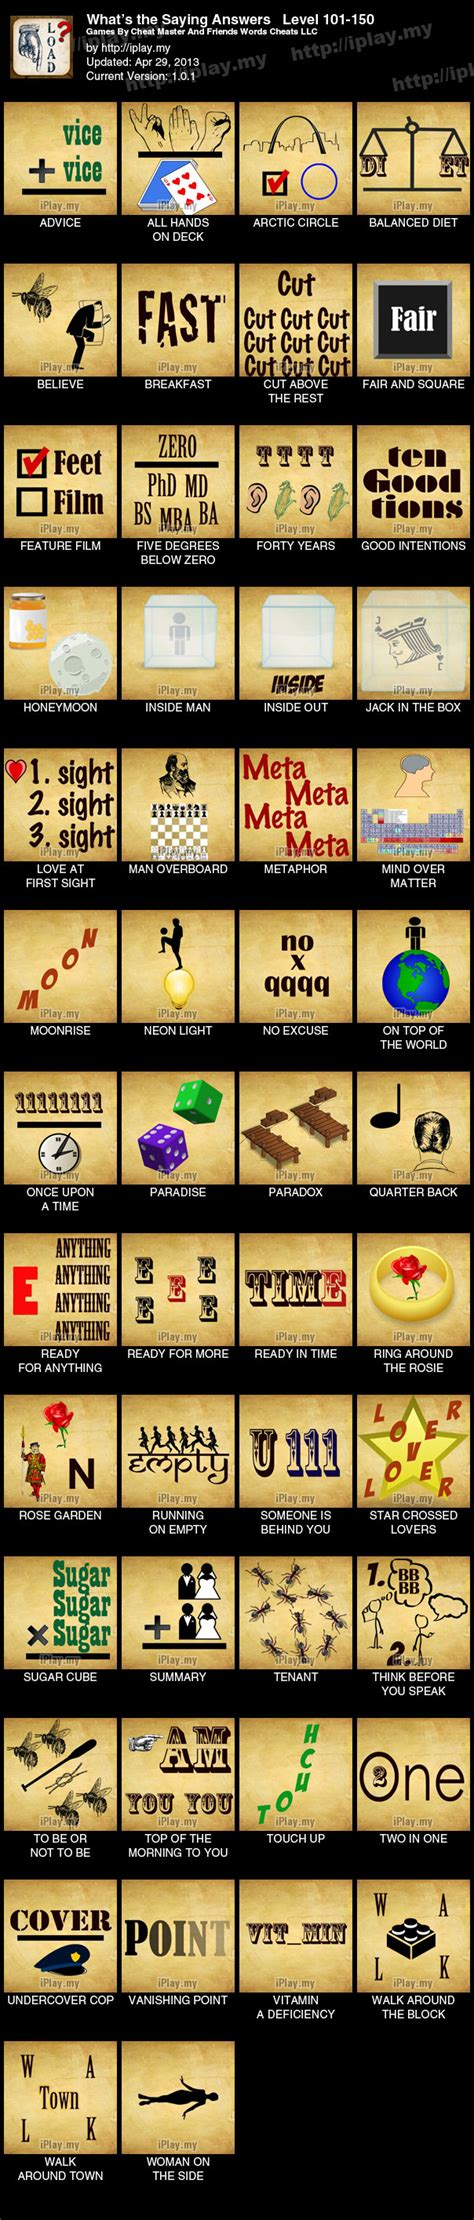 scratch pics 1 word answers 3 letters iplay my what s the saying answers with pictures iplay my page 4 92524